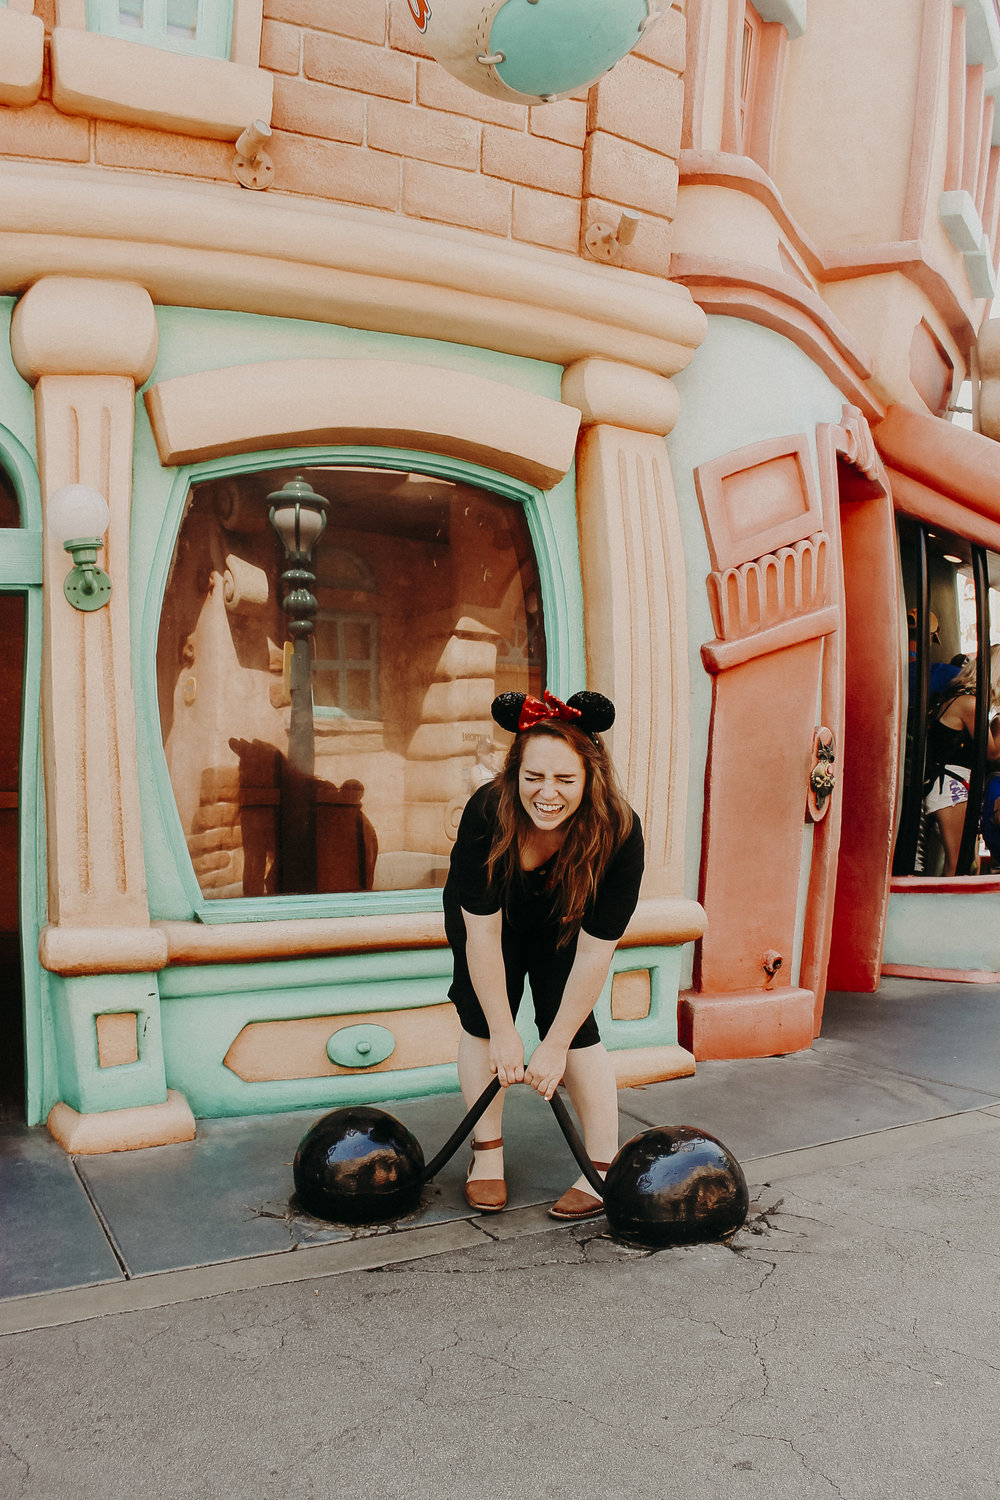 Disneyland-Travel-Diary-5.jpg